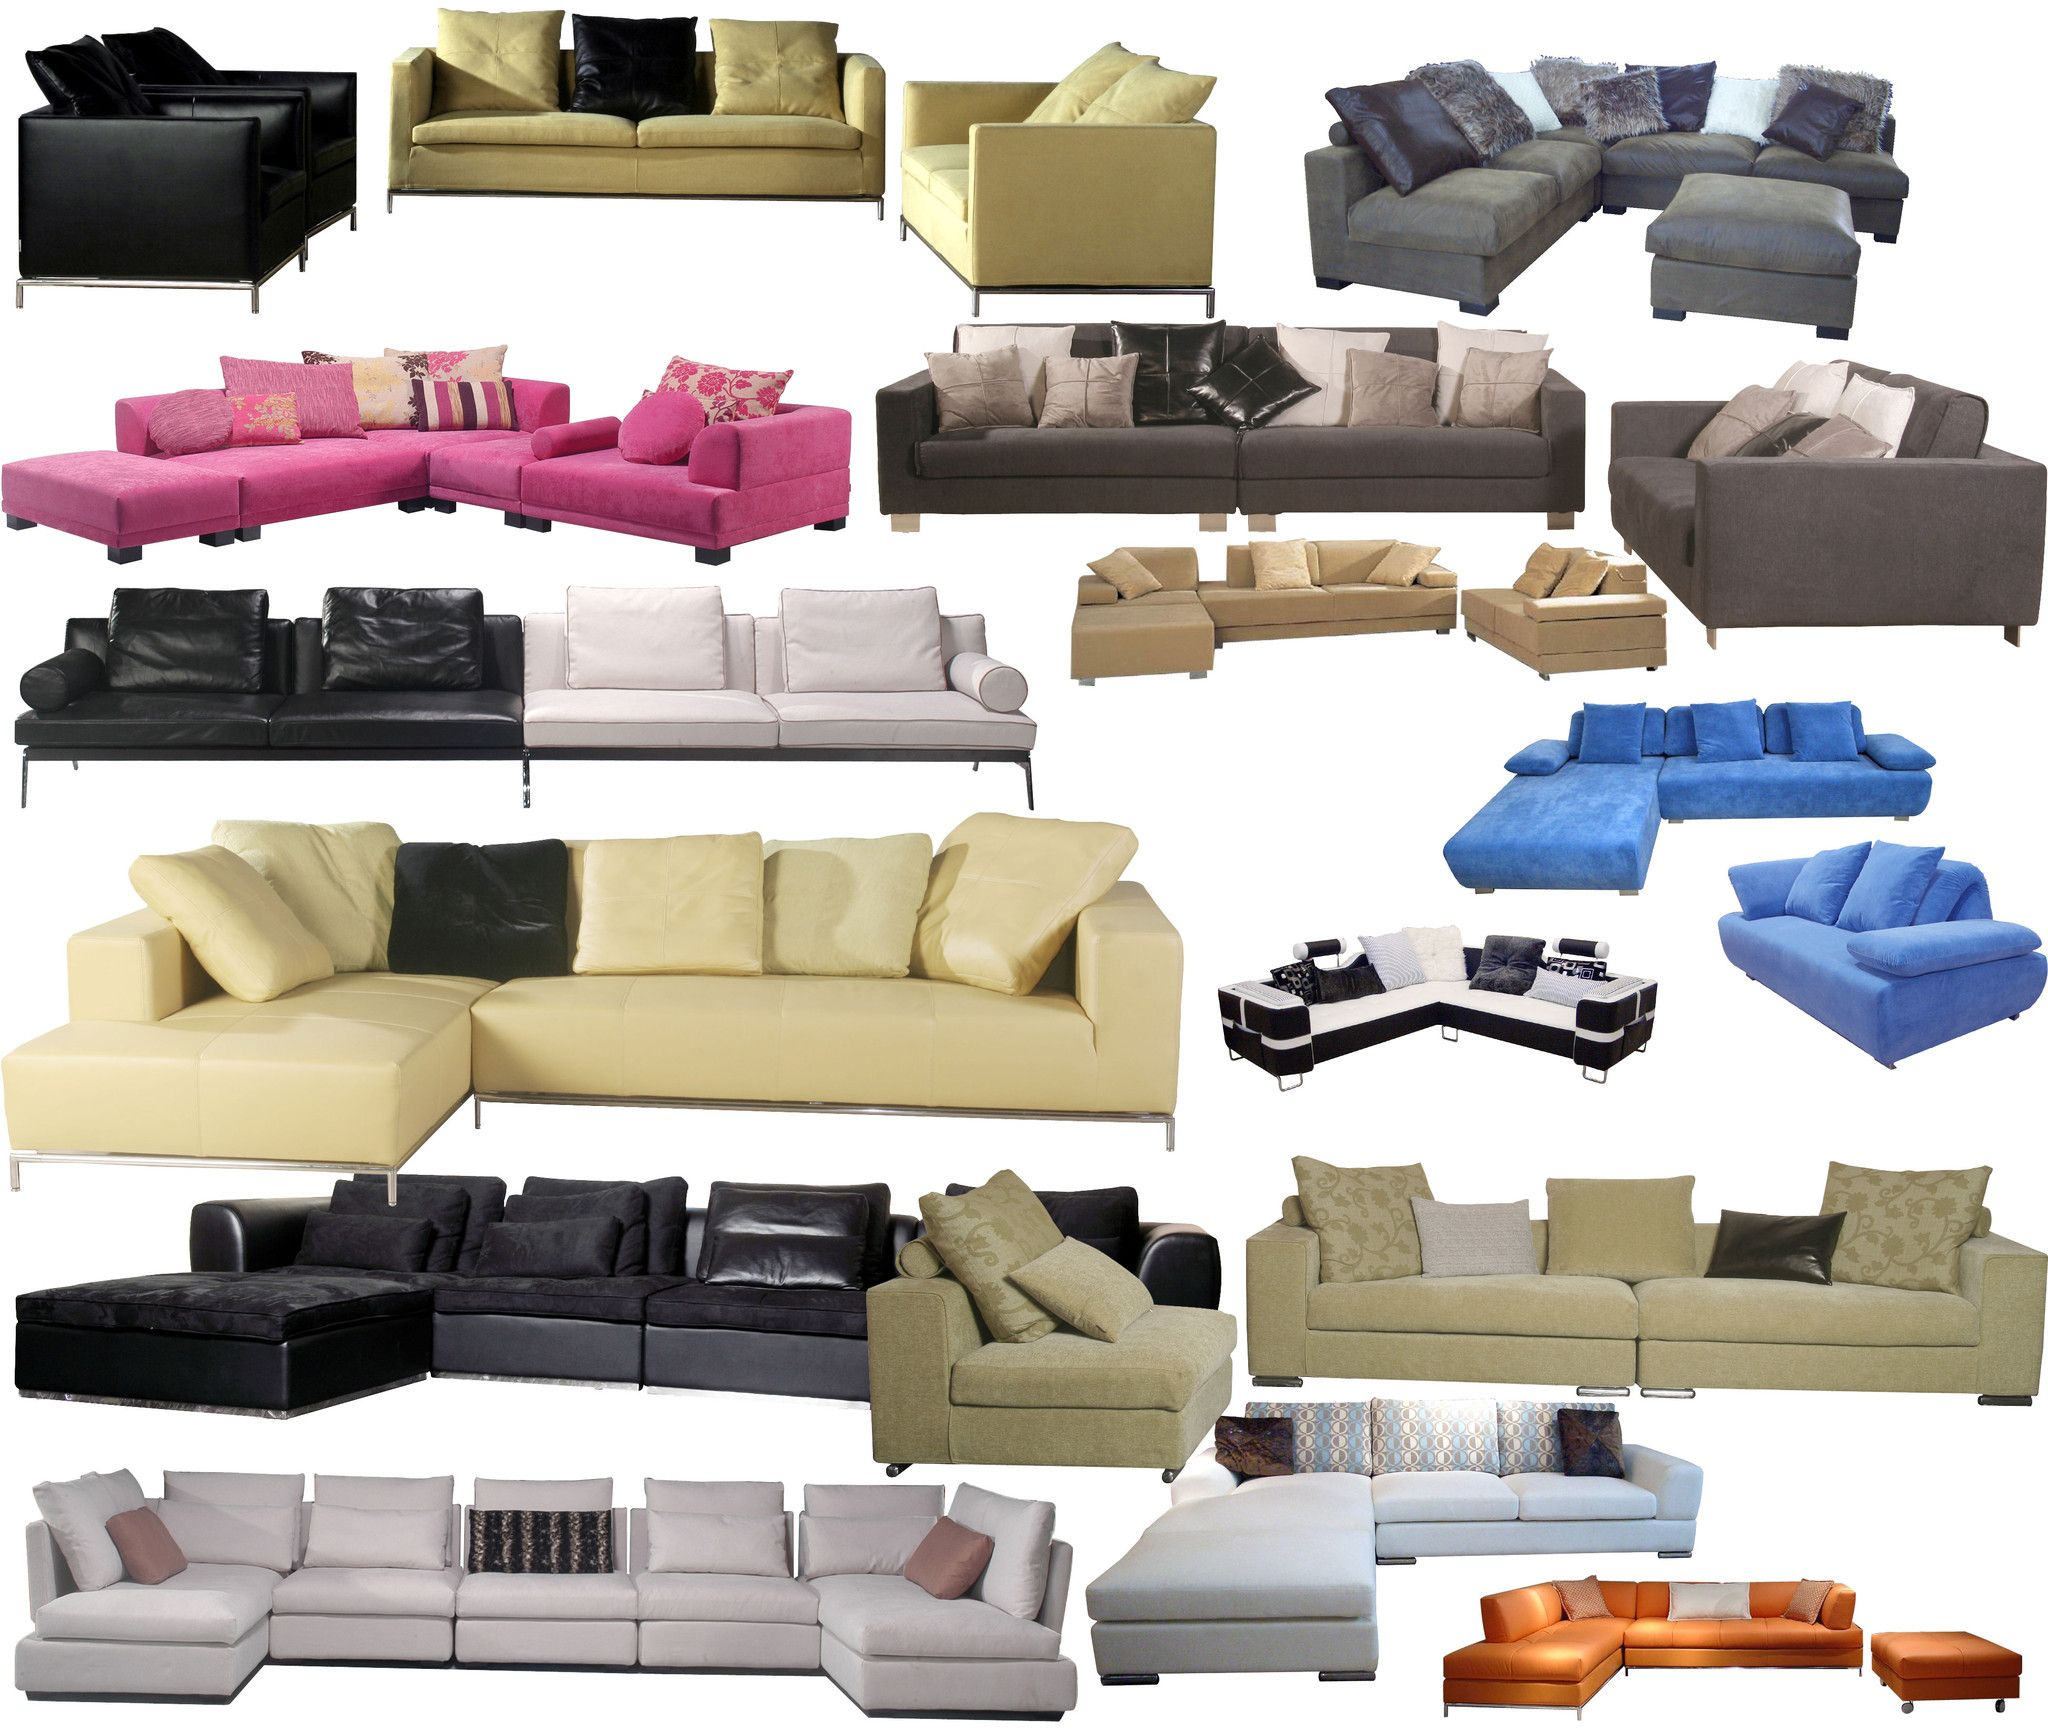 Sofa Bed Cad Block Free Harper Fabric 6 Piece Modular Sectional Photoshop Psd And Chair Blocks V3